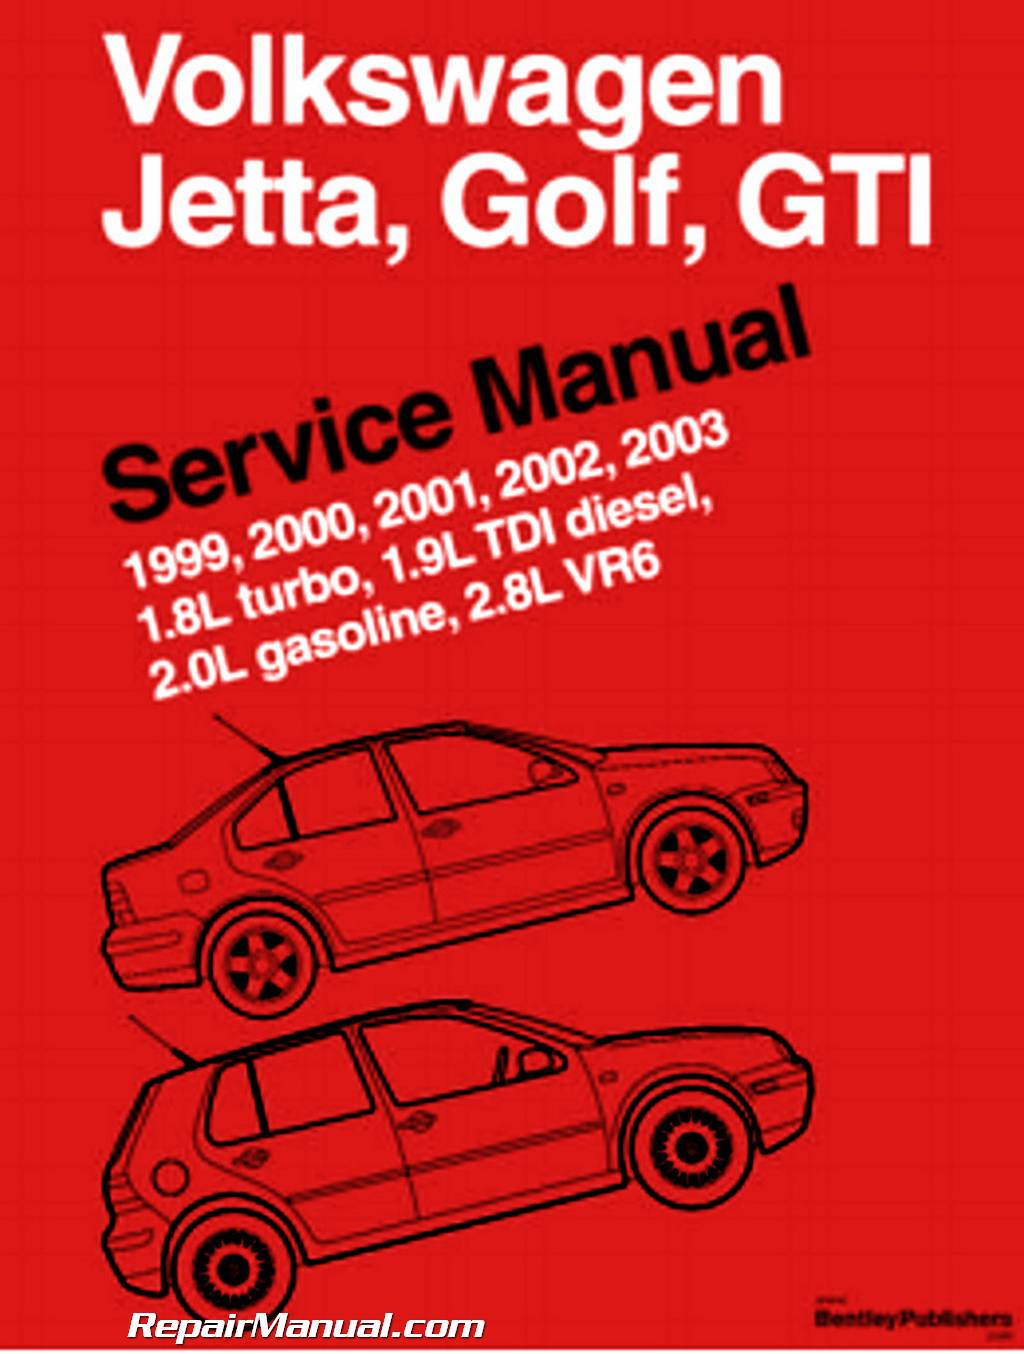 Volkswagen Jetta Golf GTI manual